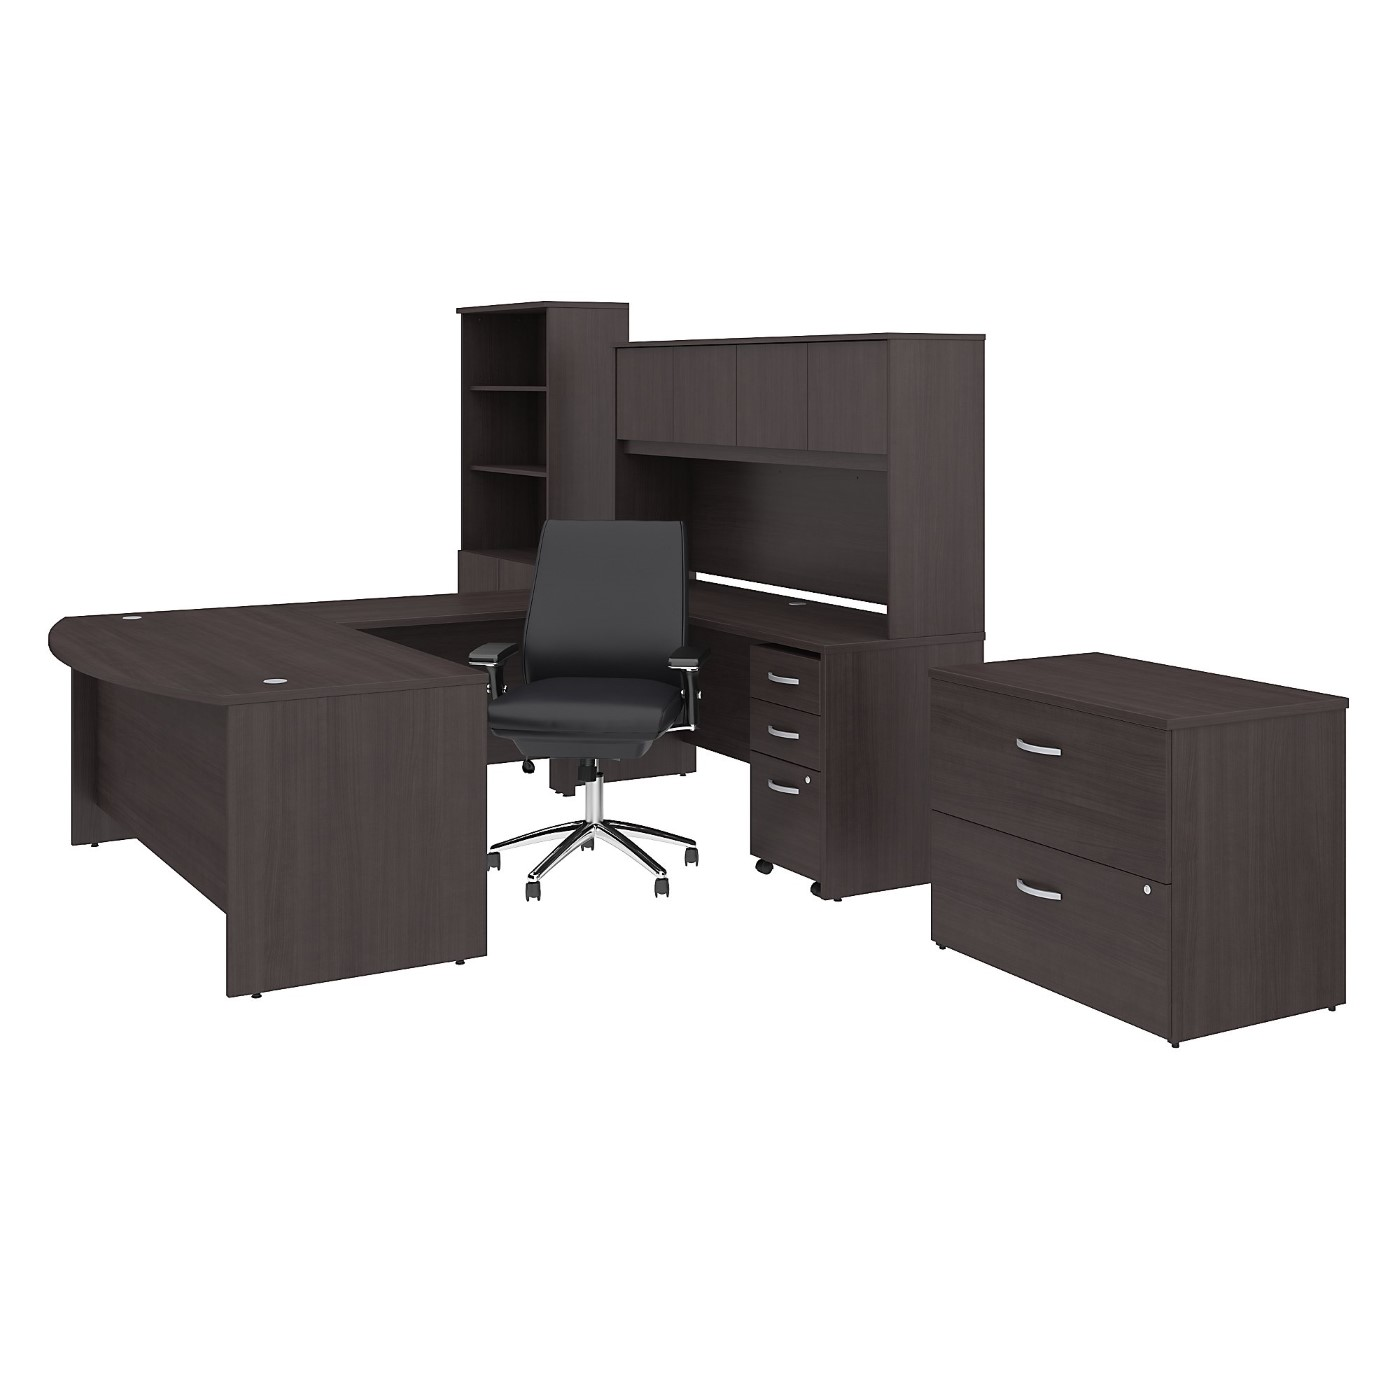 BUSH BUSINESS FURNITURE STUDIO C 72W X 36D U SHAPED DESK WITH HUTCH, BOOKCASE, FILE CABINETS AND MID BACK OFFICE CHAIR. FREE SHIPPING